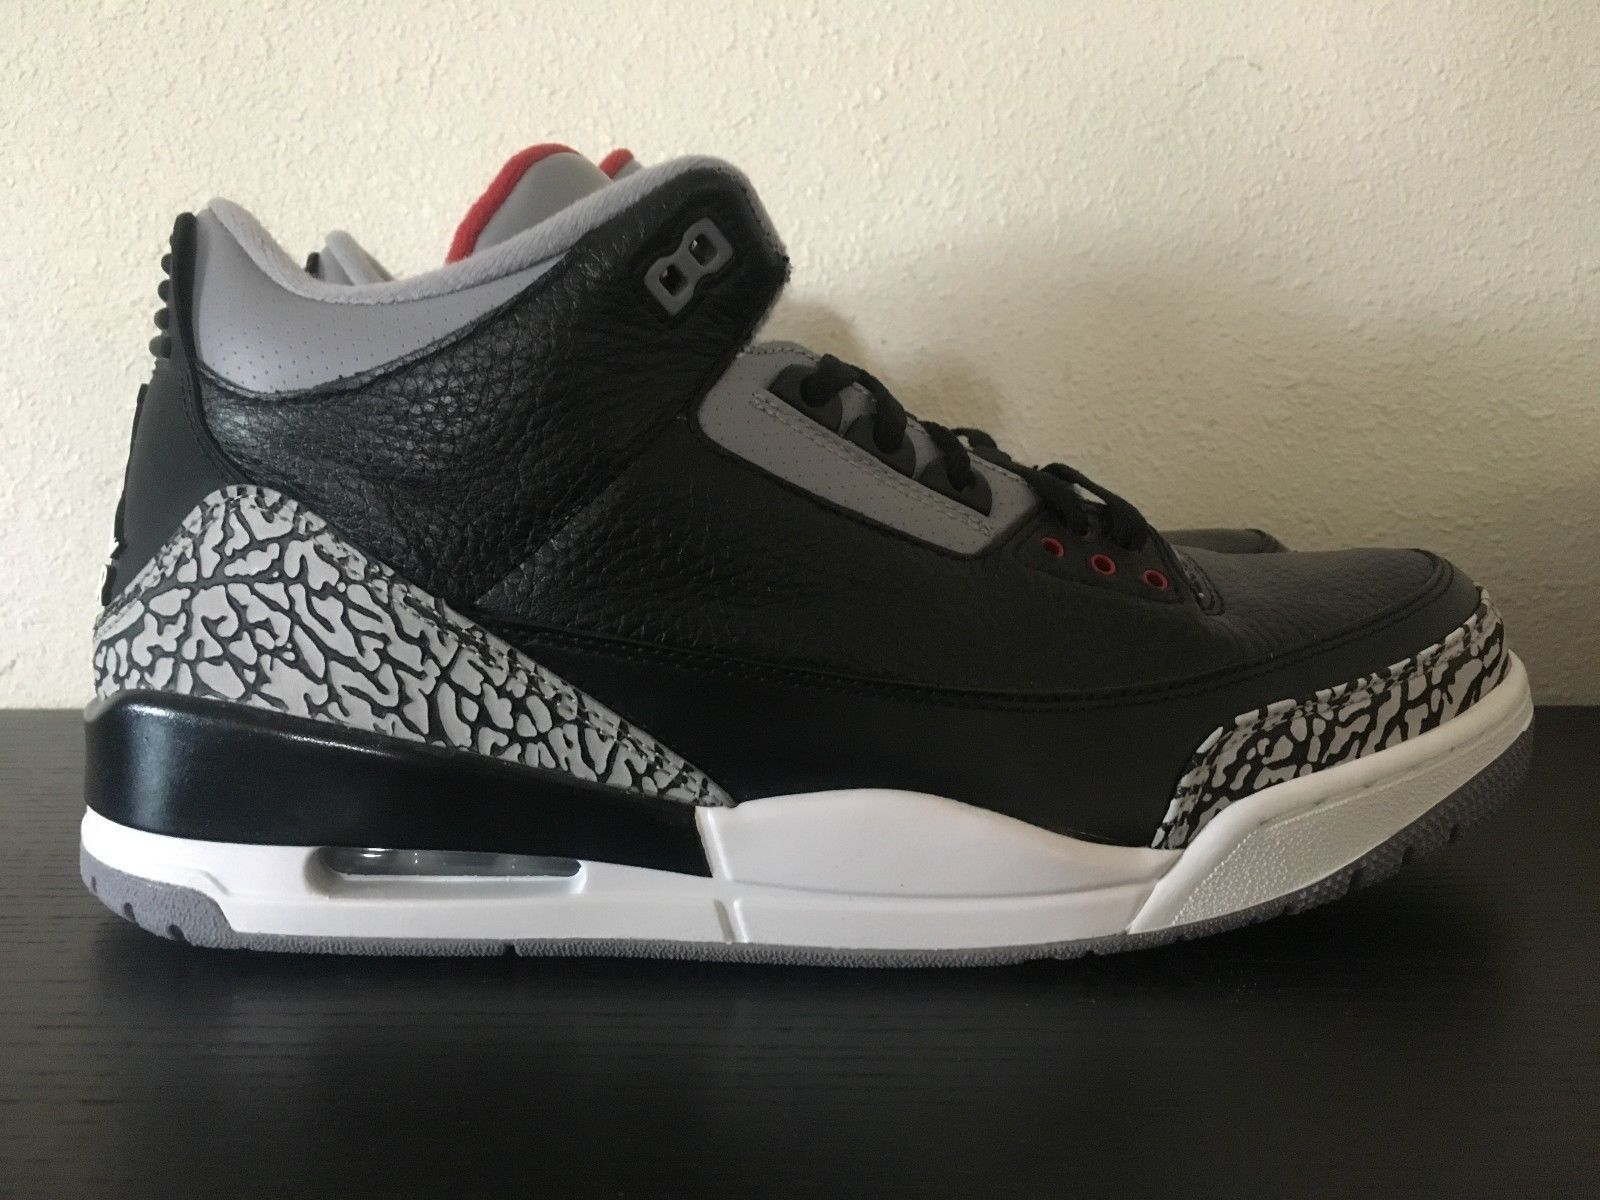 a3bb9503d3d7 Details about Nike Air Jordan III 3 Retro - Black Cement - 2011 ...